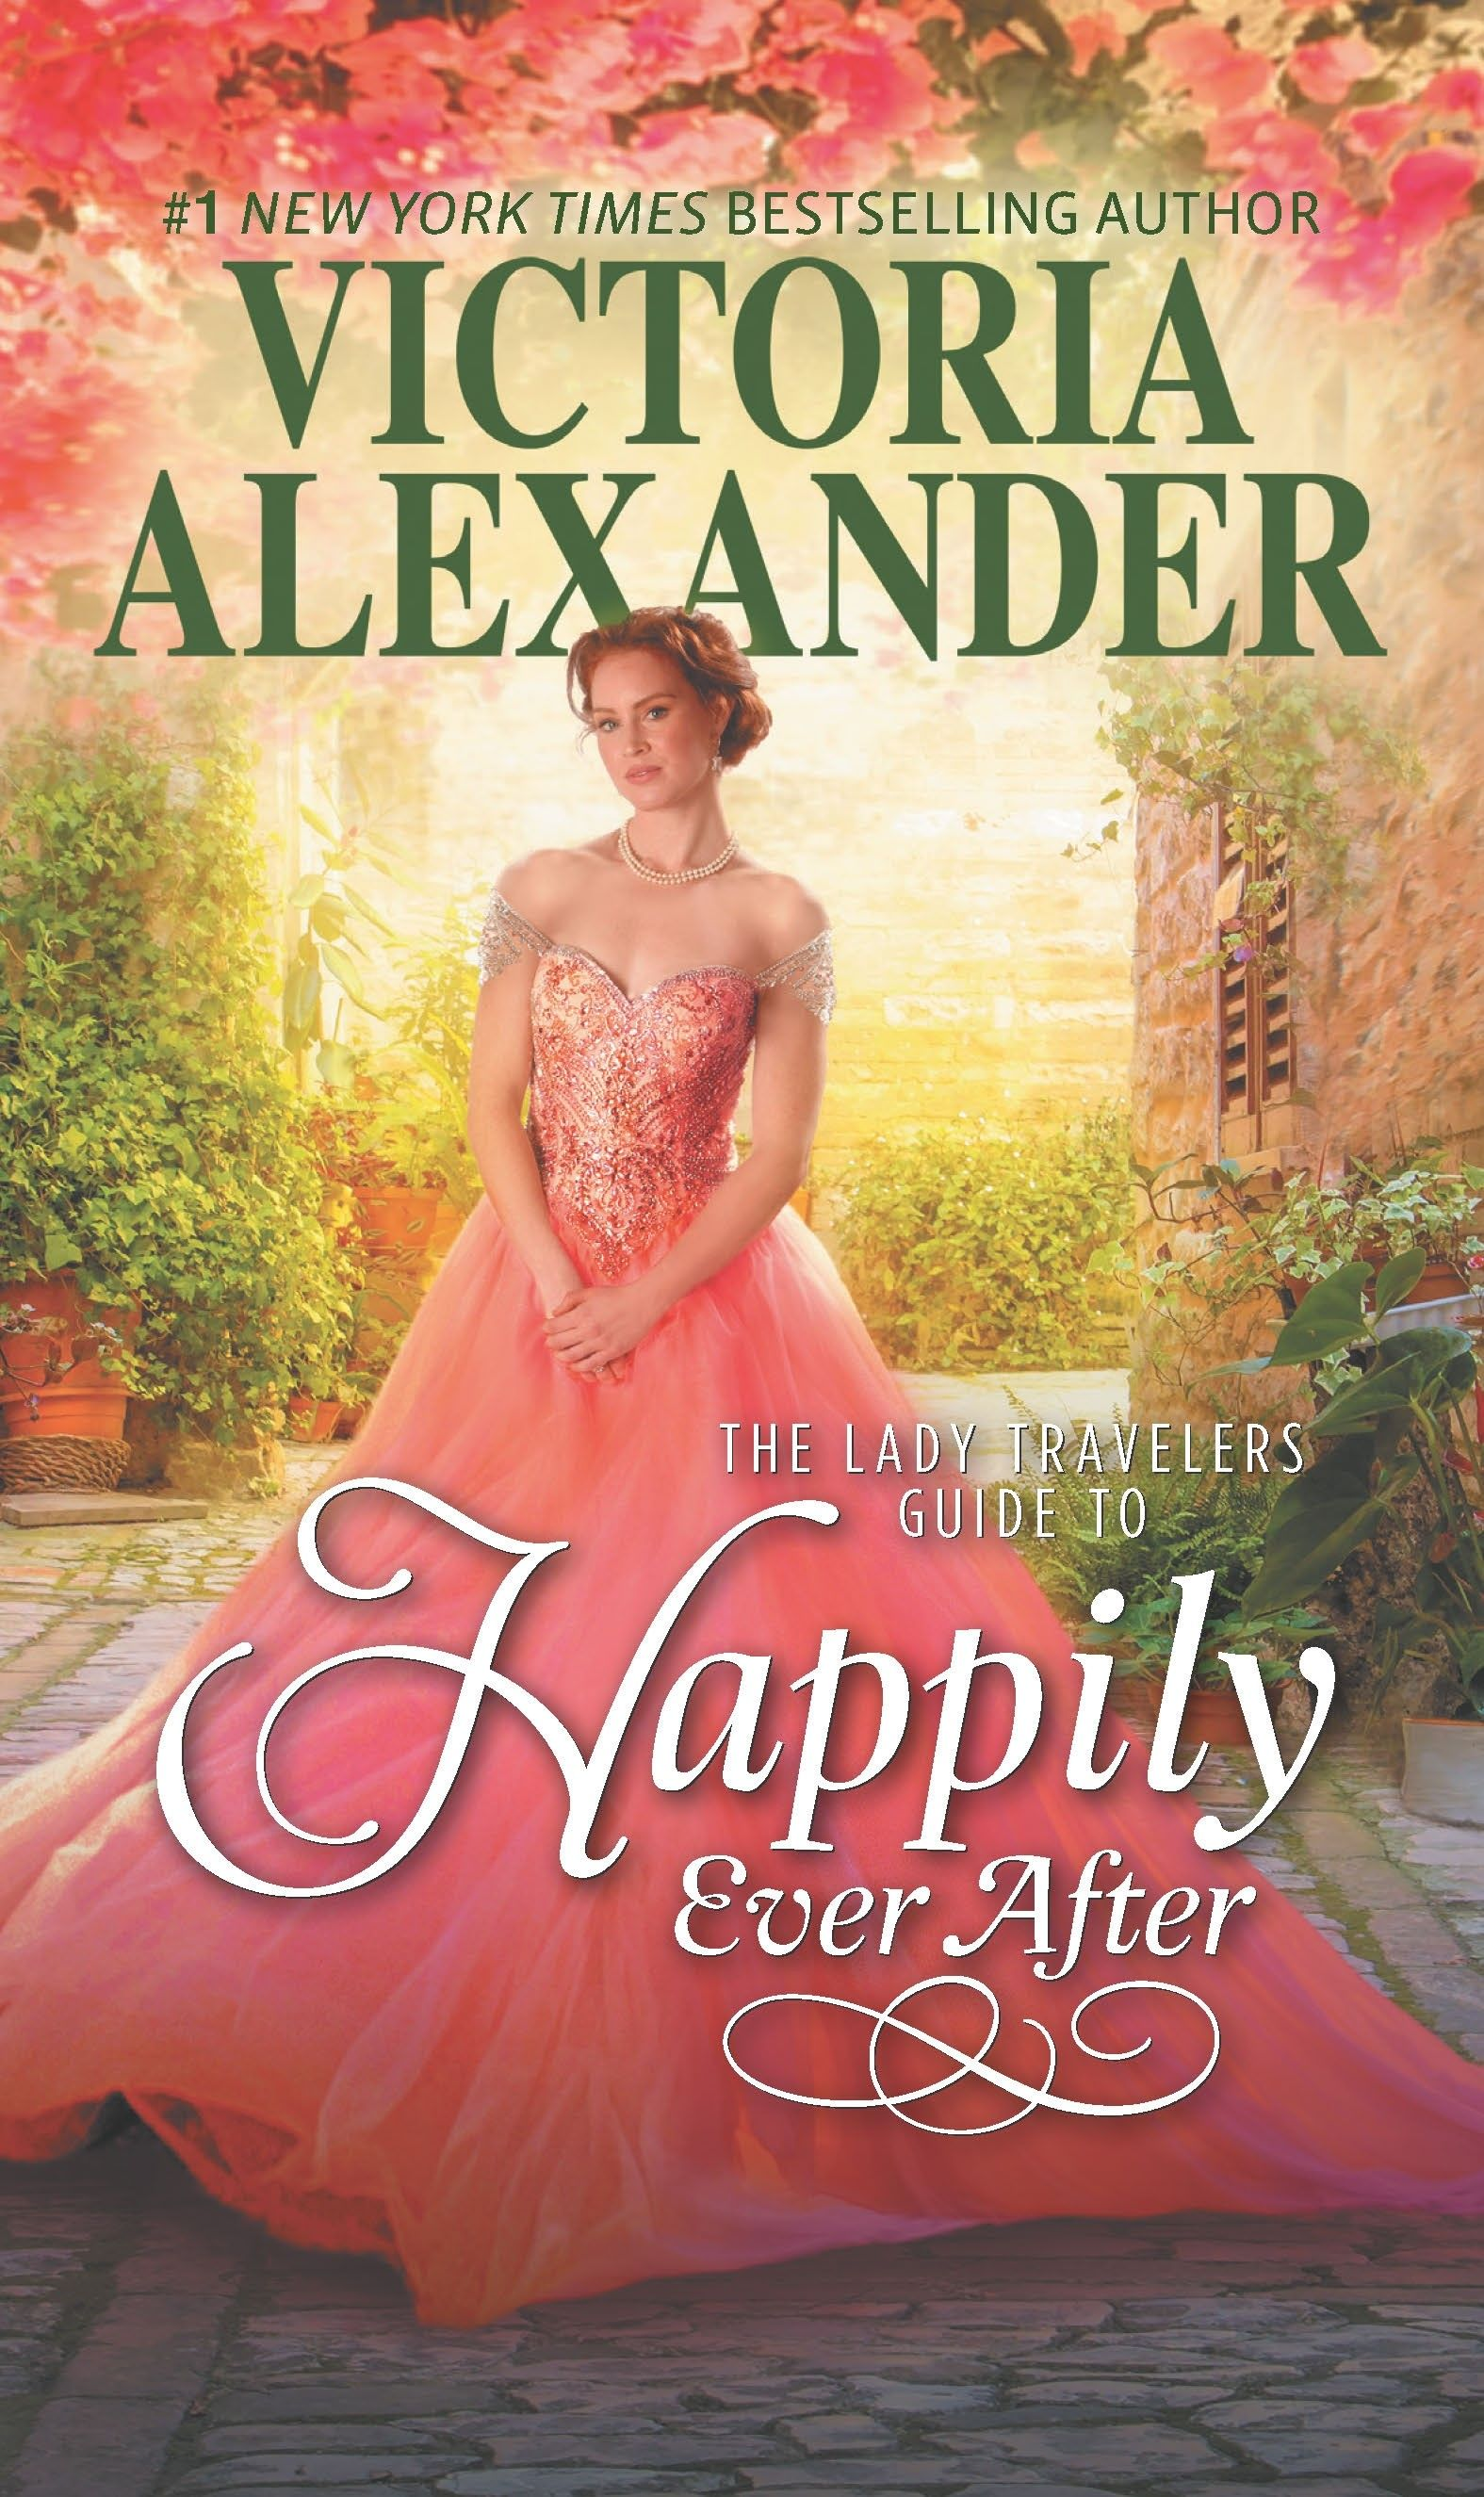 The Lady Travelers Guide to Happily Ever After by Victoria Alexander